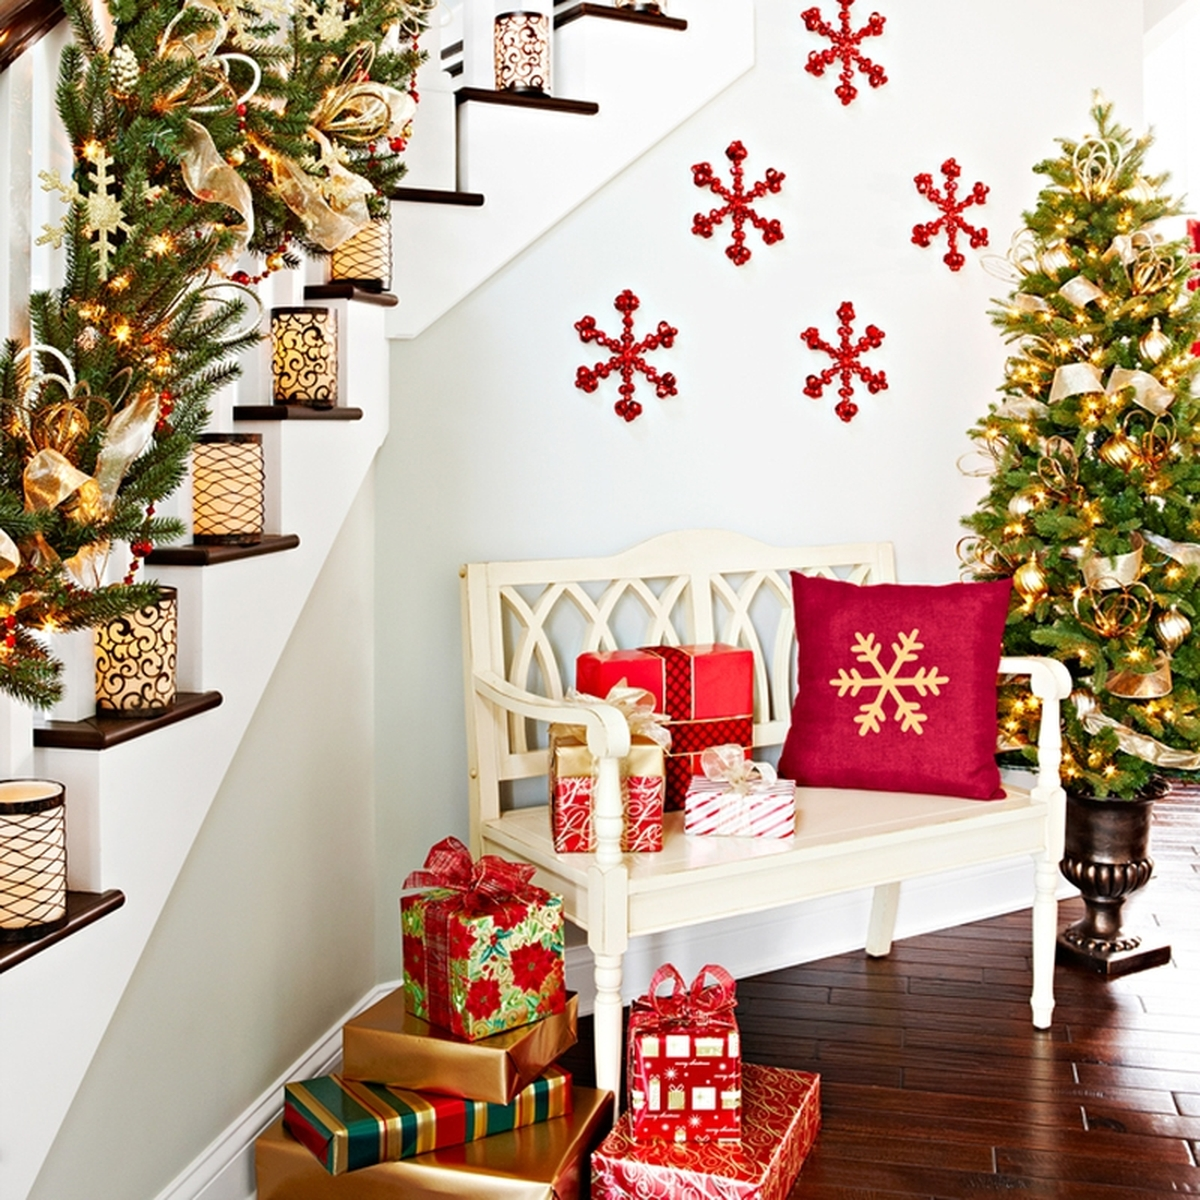 Christmas Decorations Holiday Decorations Decor: 50 Best Indoor Decoration Ideas For Christmas In 2019